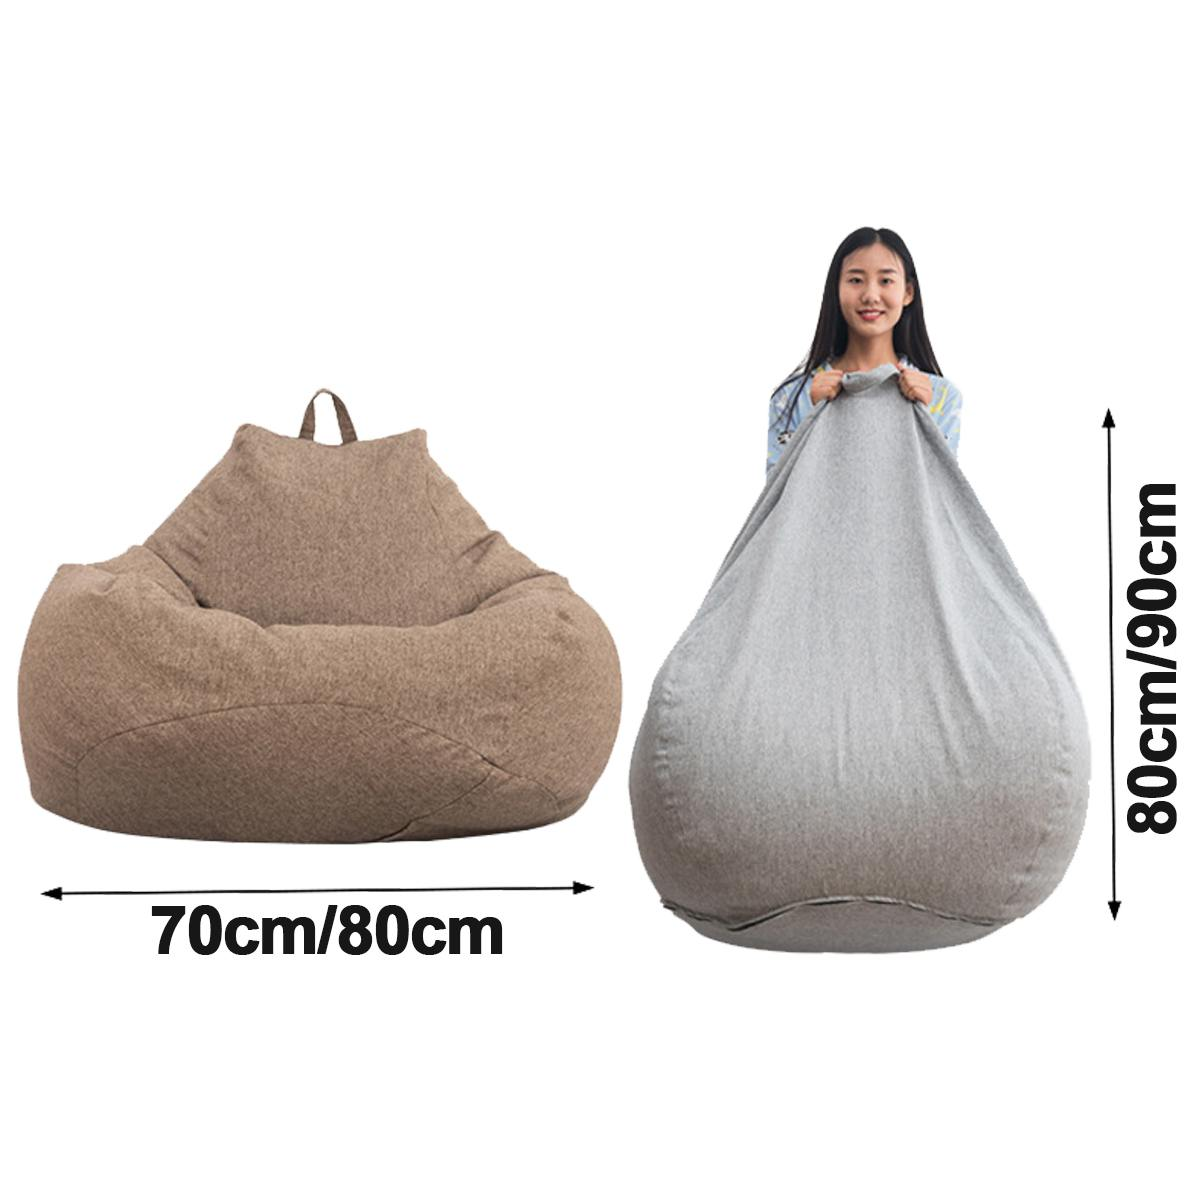 Chair Beanbag Sofas Lining Only  Inner Lining Lazy BeanBag Sofas Waterproof Stuffed Animal Storage Toy Bean Bag without CoverChair Beanbag Sofas Lining Only  Inner Lining Lazy BeanBag Sofas Waterproof Stuffed Animal Storage Toy Bean Bag without Cover